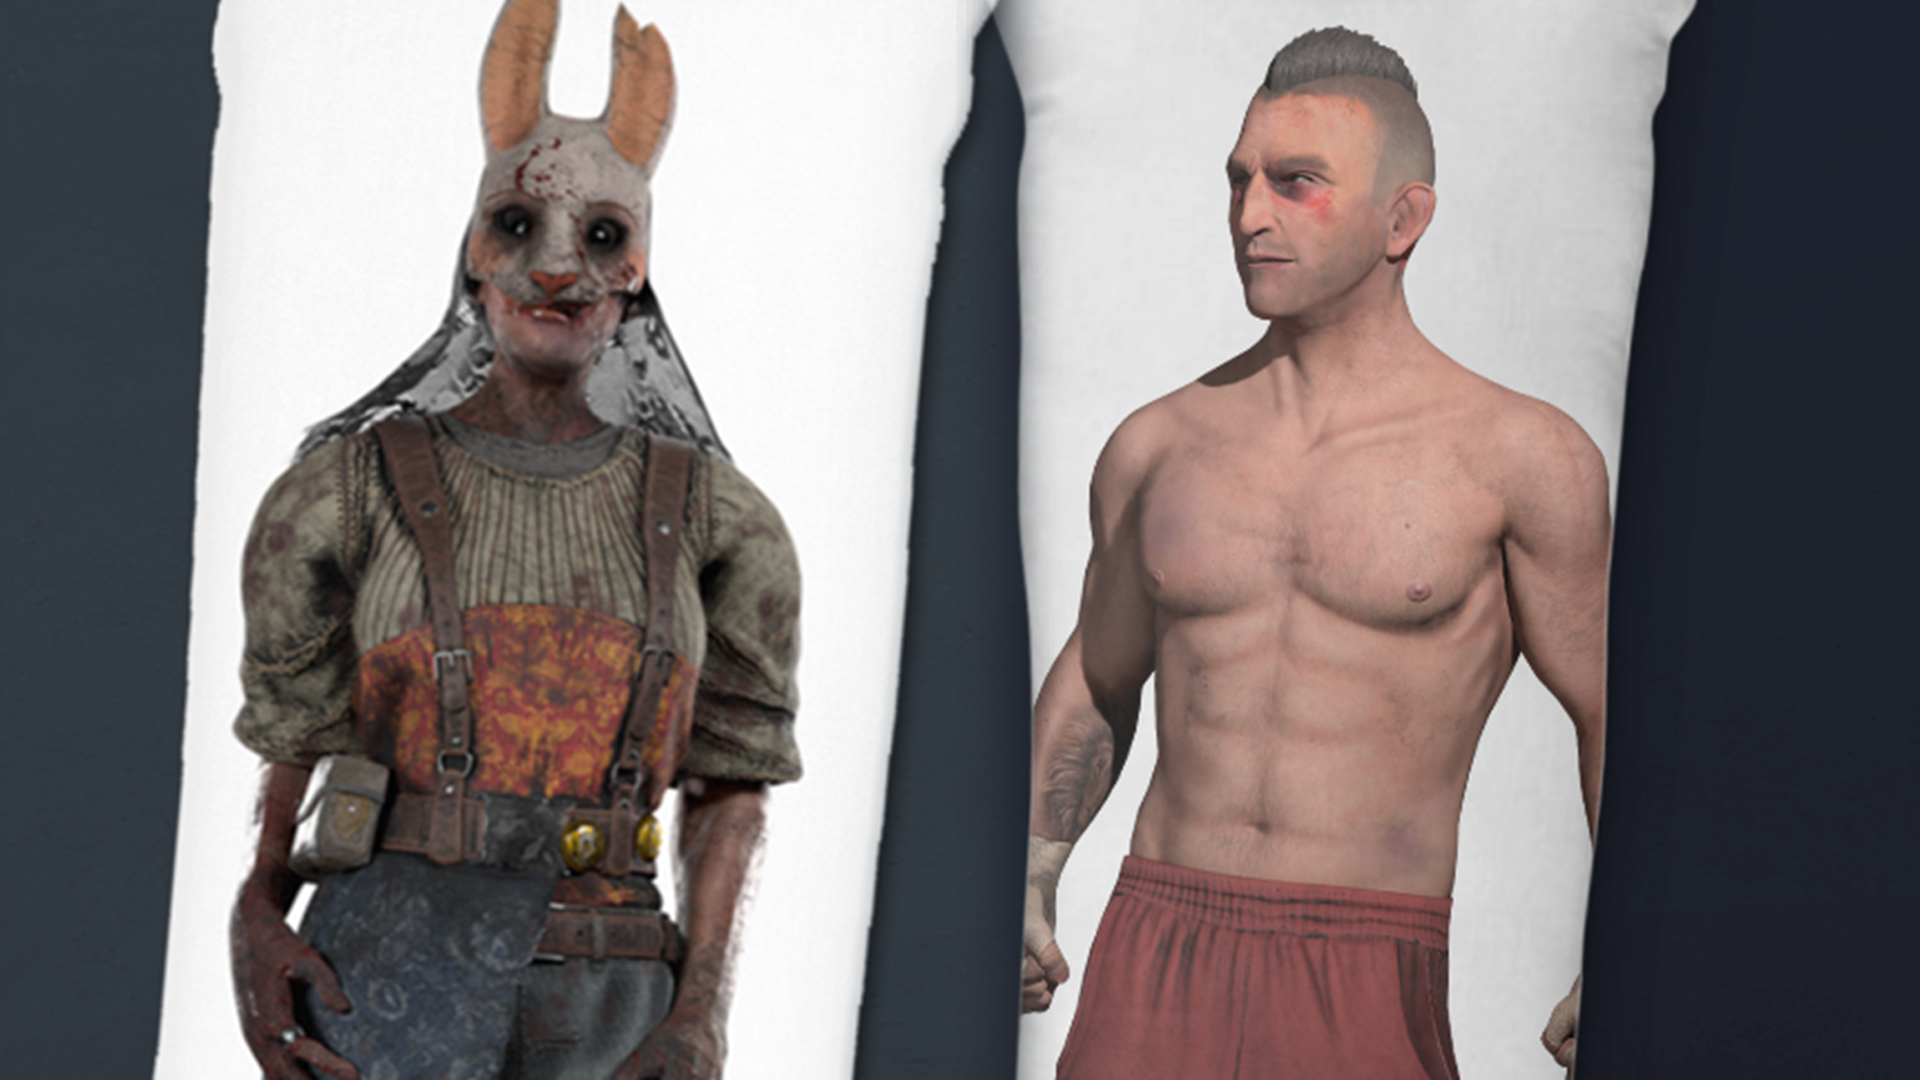 Dead by Daylight has official body pillows, so you can cuddle with your favourite killer